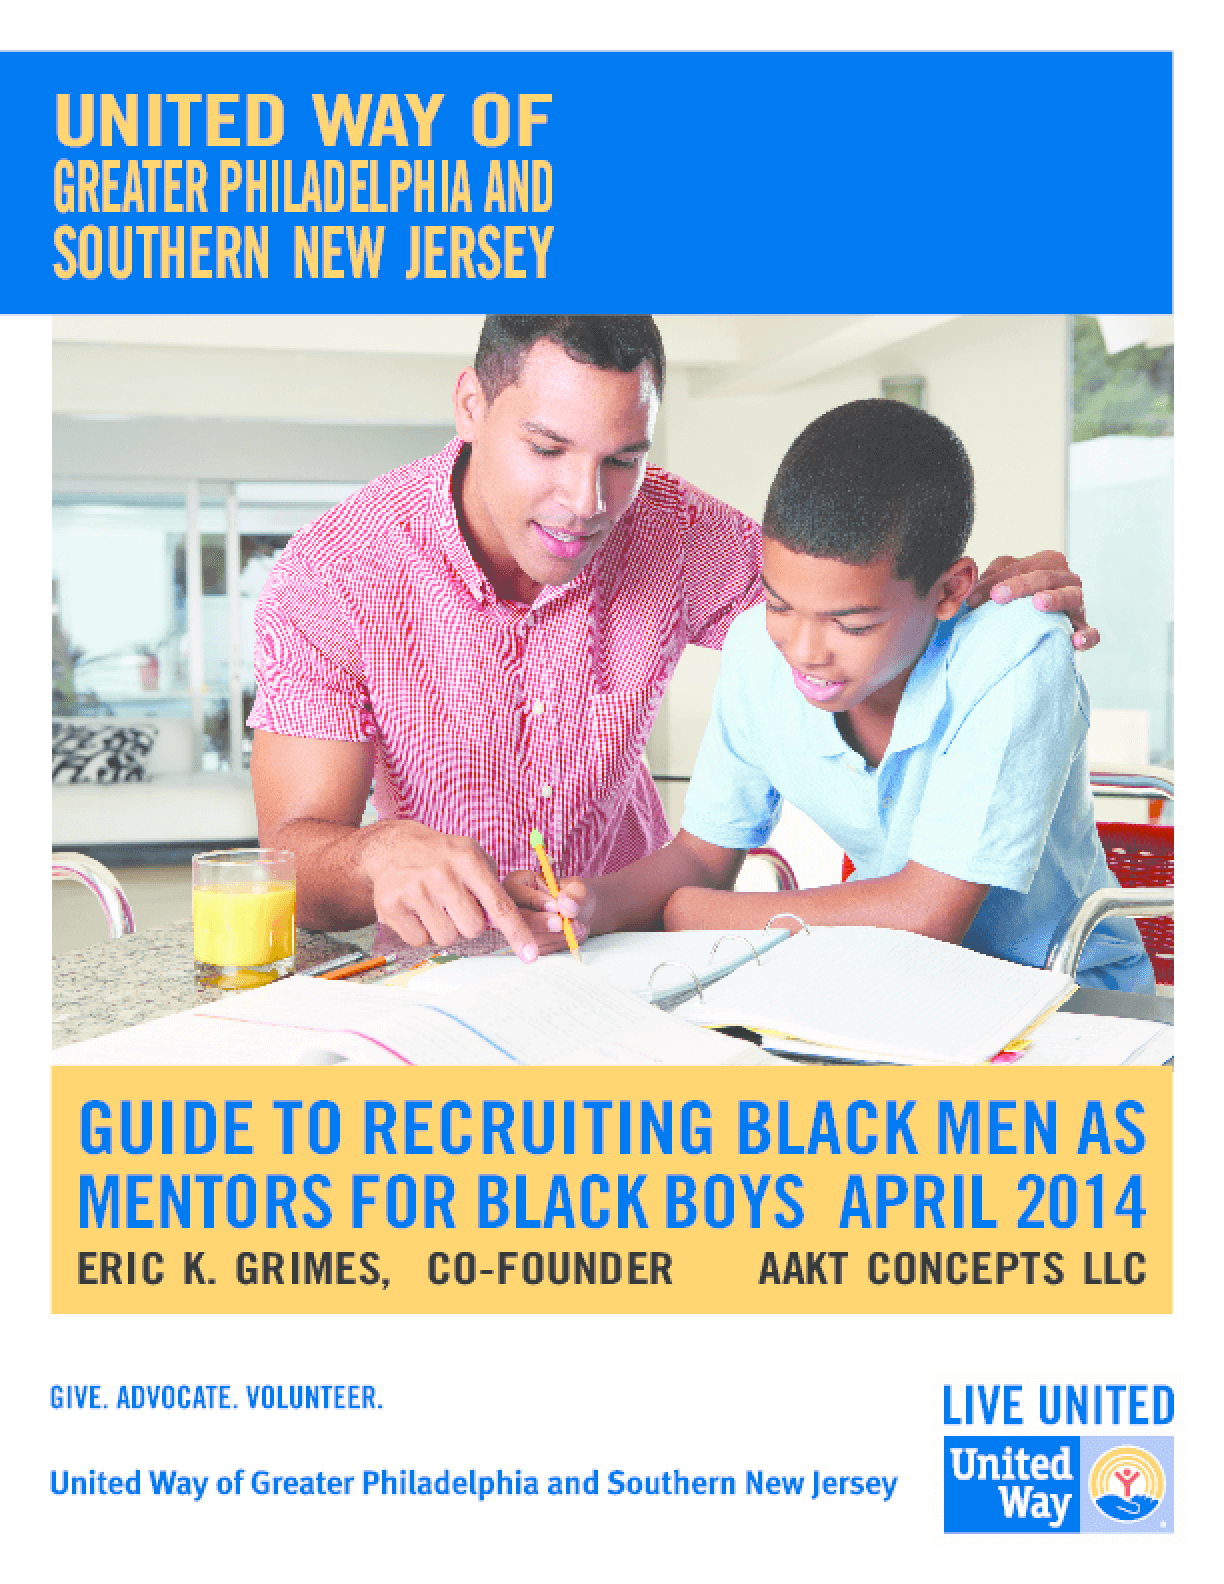 Guide to Recruiting Black Men as Mentors for Black Boys